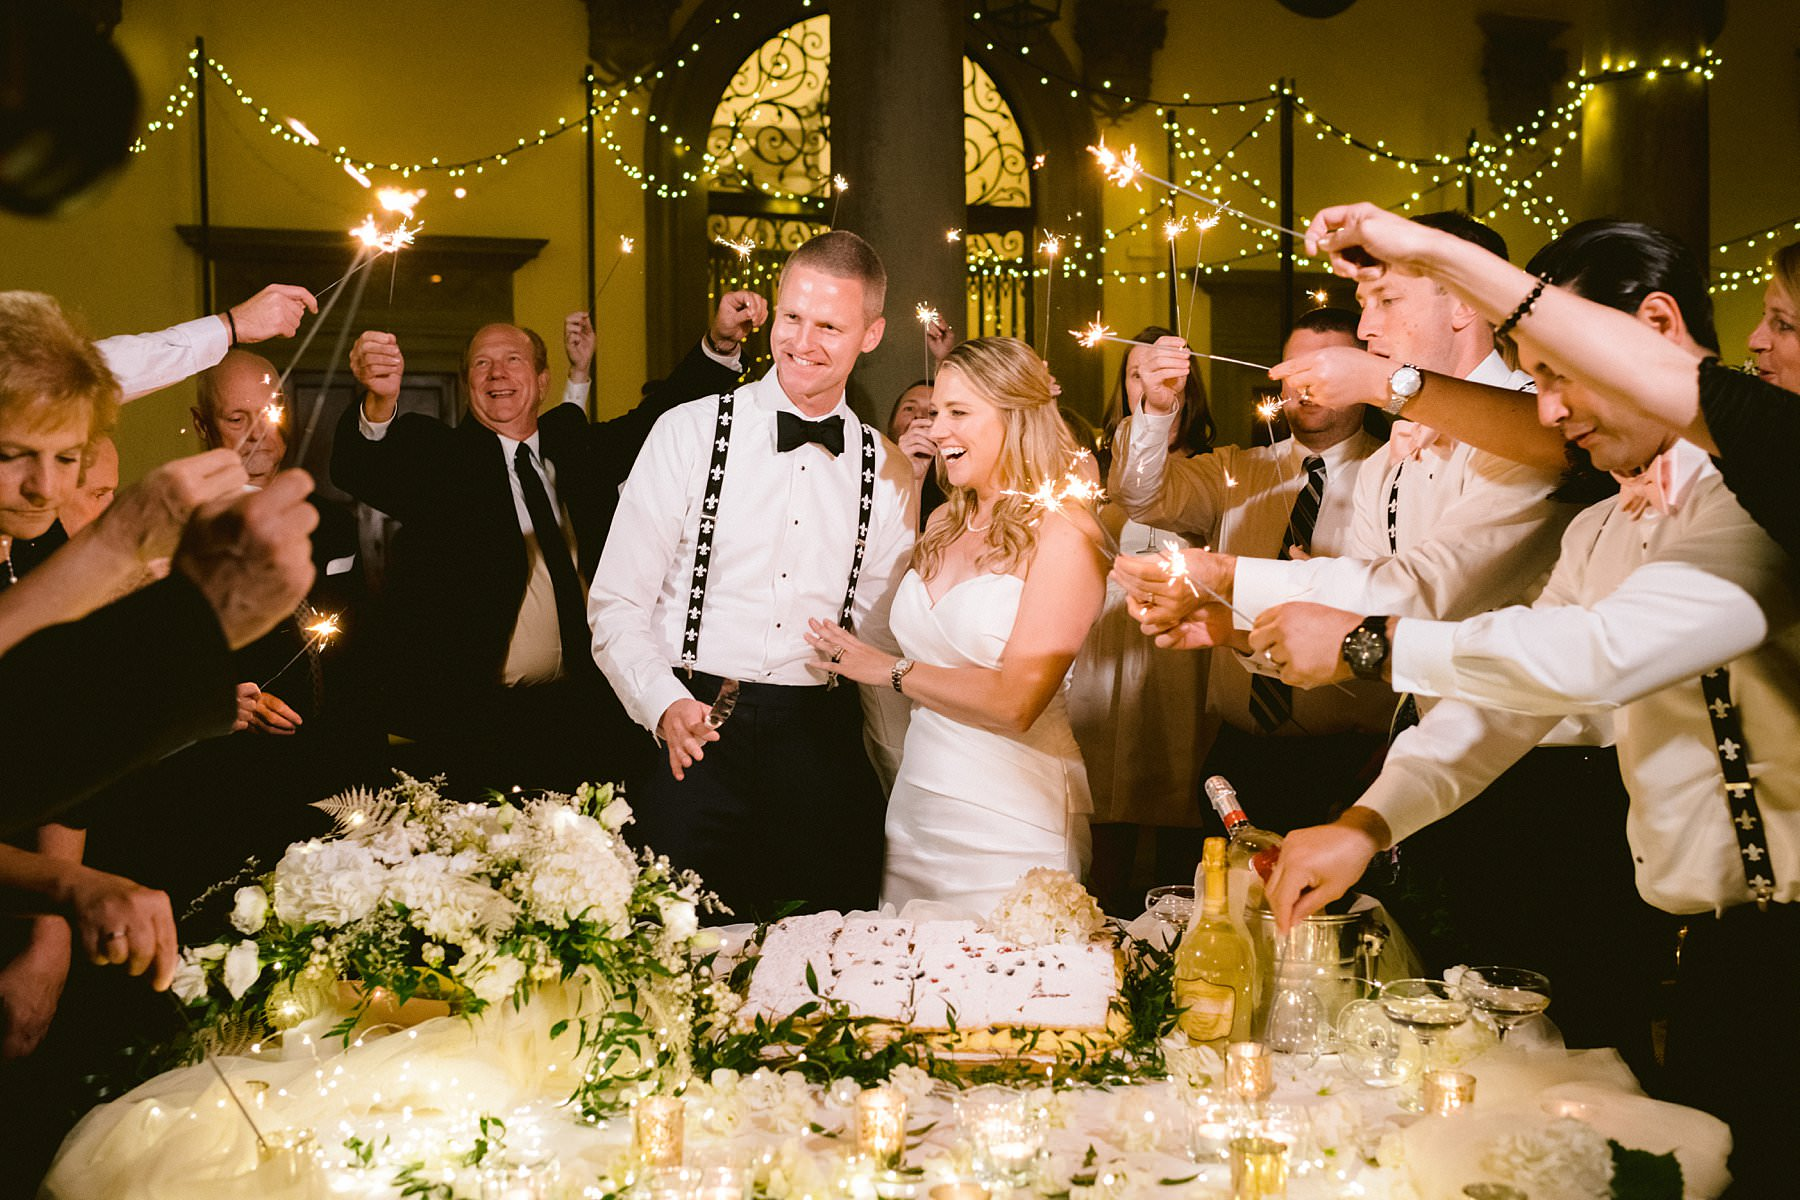 Beth and Evan's exquisite intimate and luxury wedding: just like a dream. Cake of the cut with guests and sparkle lights at Palazzo Gondi courtyard